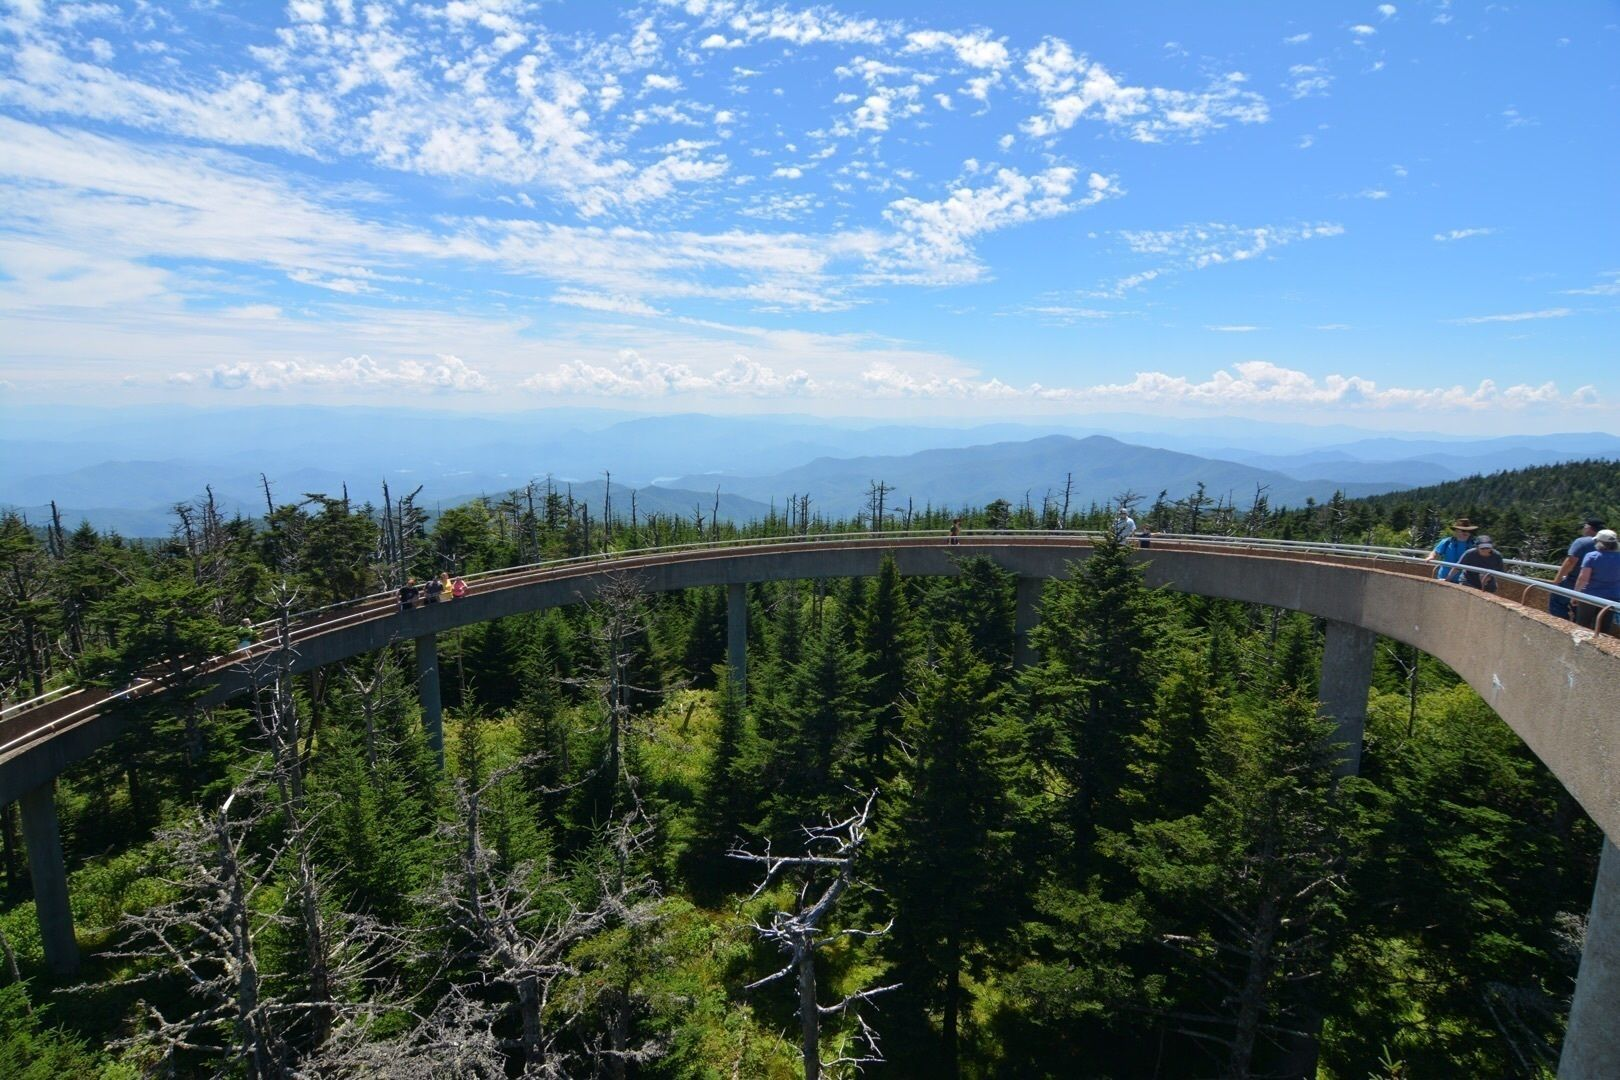 Clingmans Dome Observation Tower Trail - Tennessee | AllTrails